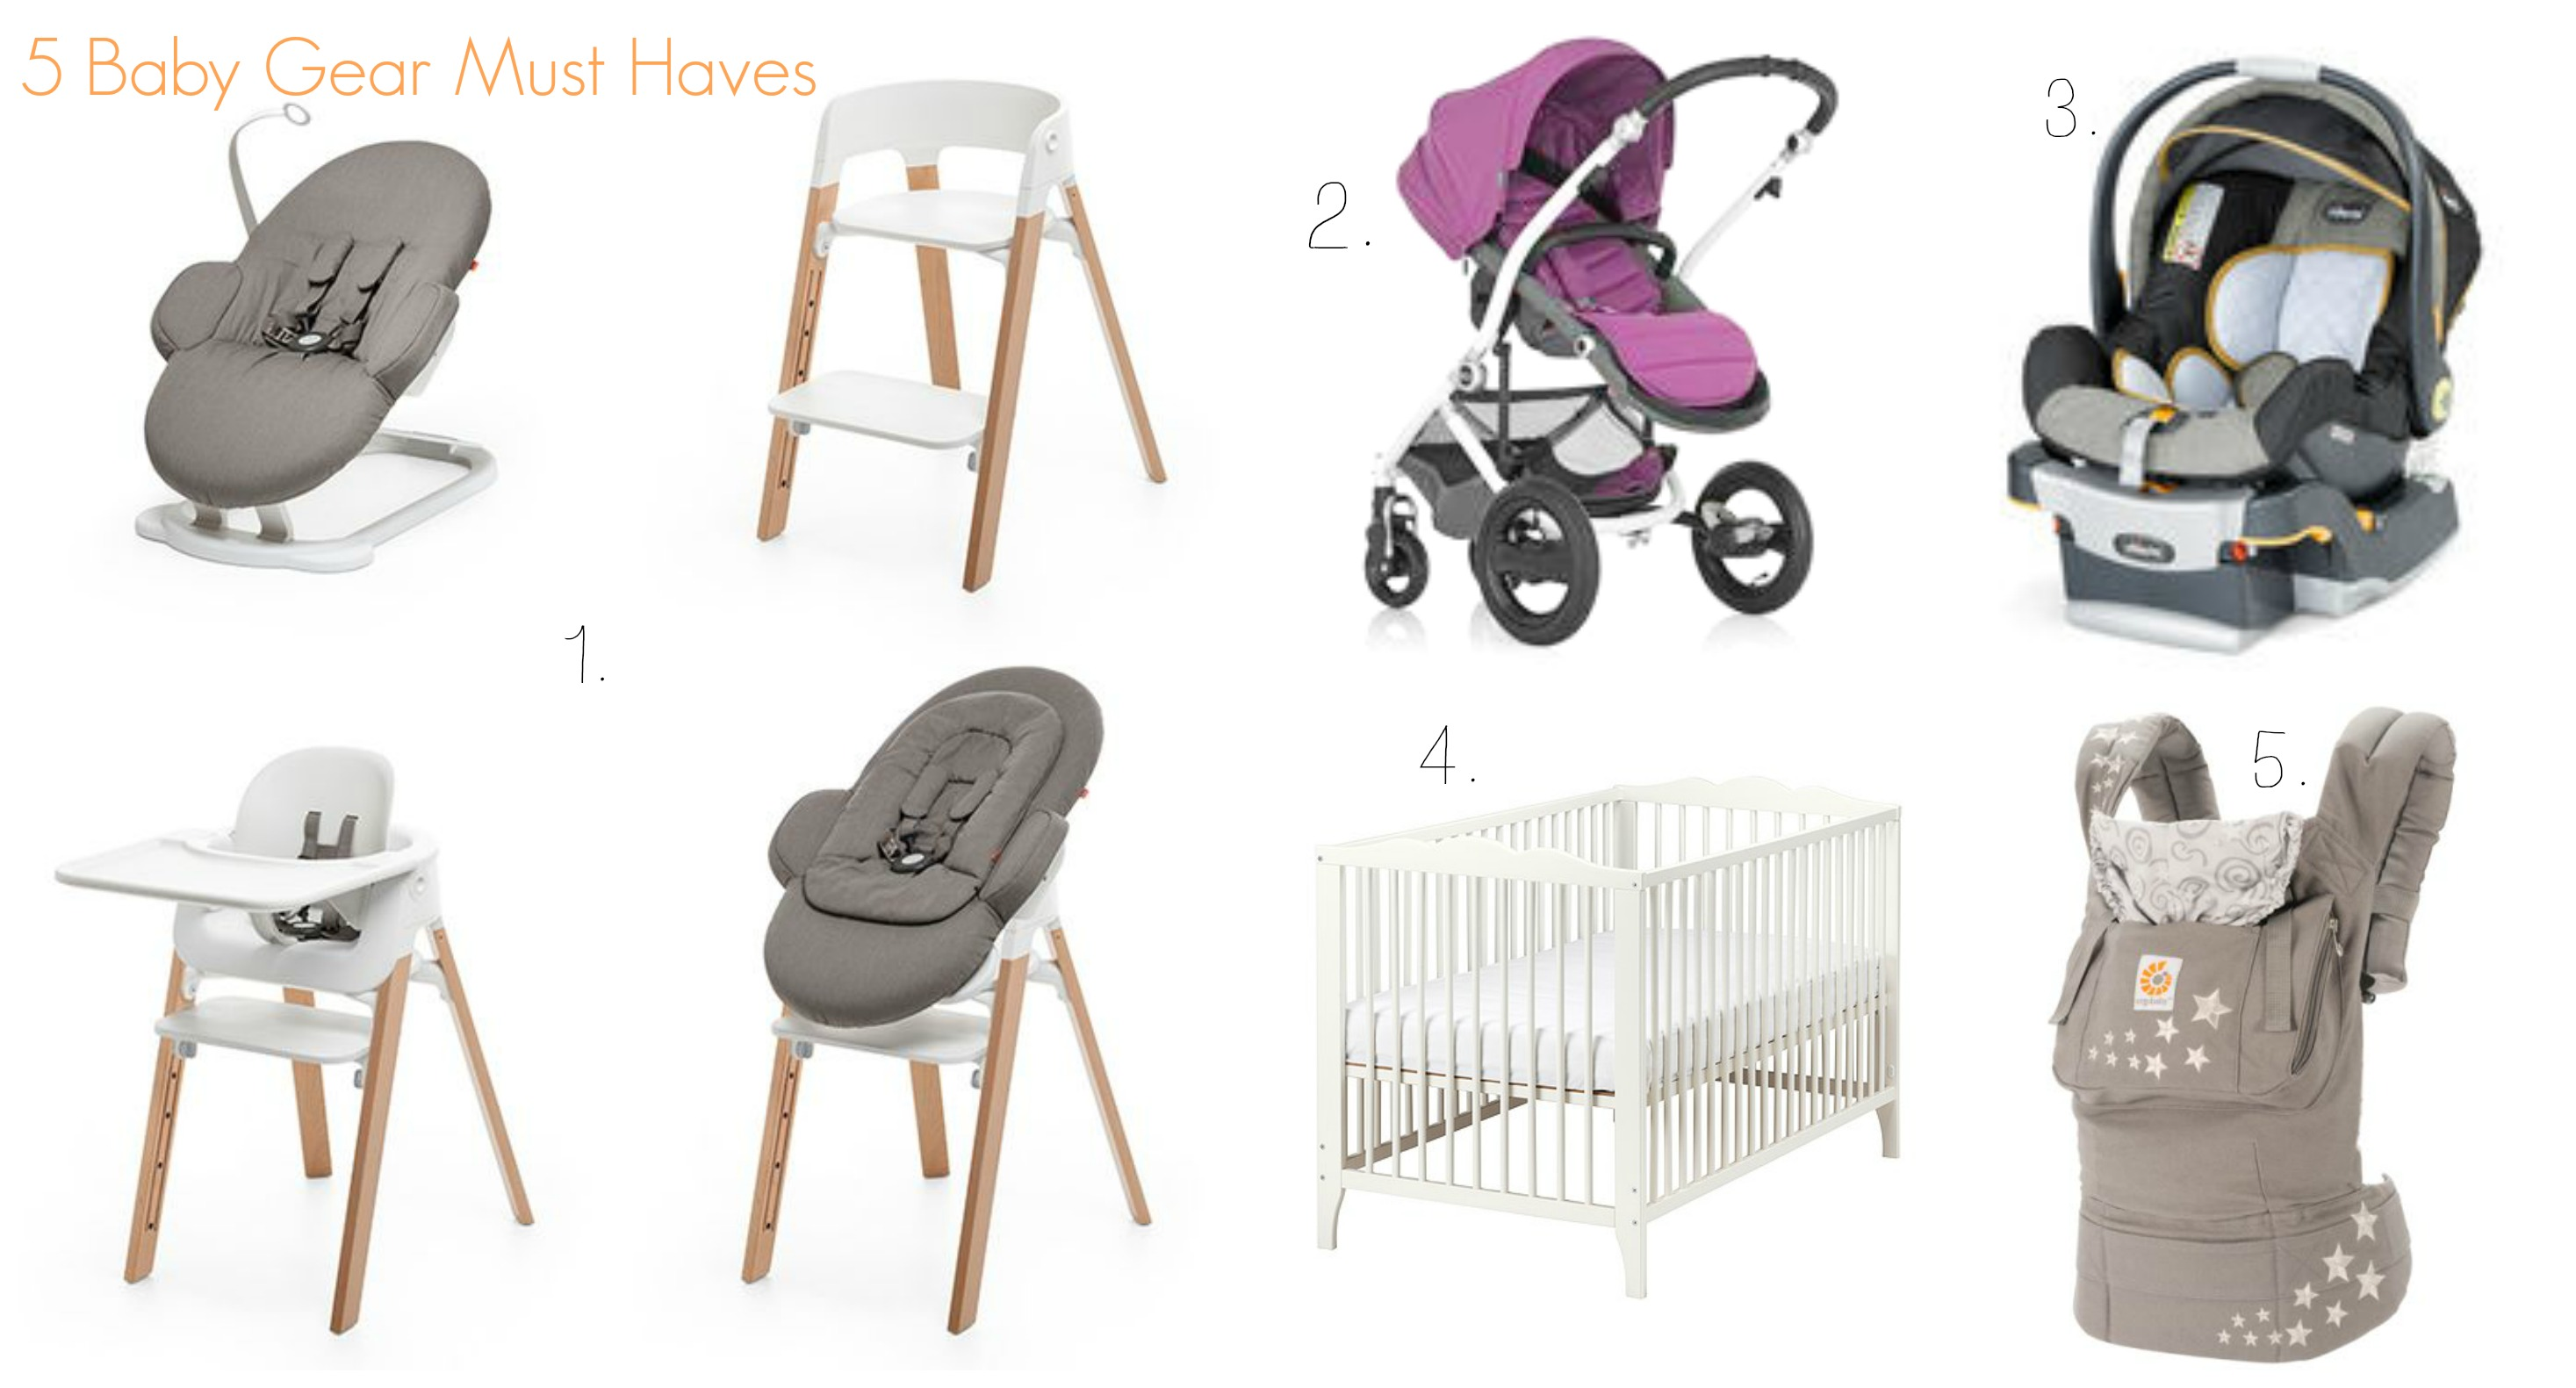 Get Ready for Baby with These 5 Baby Gear Must Haves TheNewYorkMom